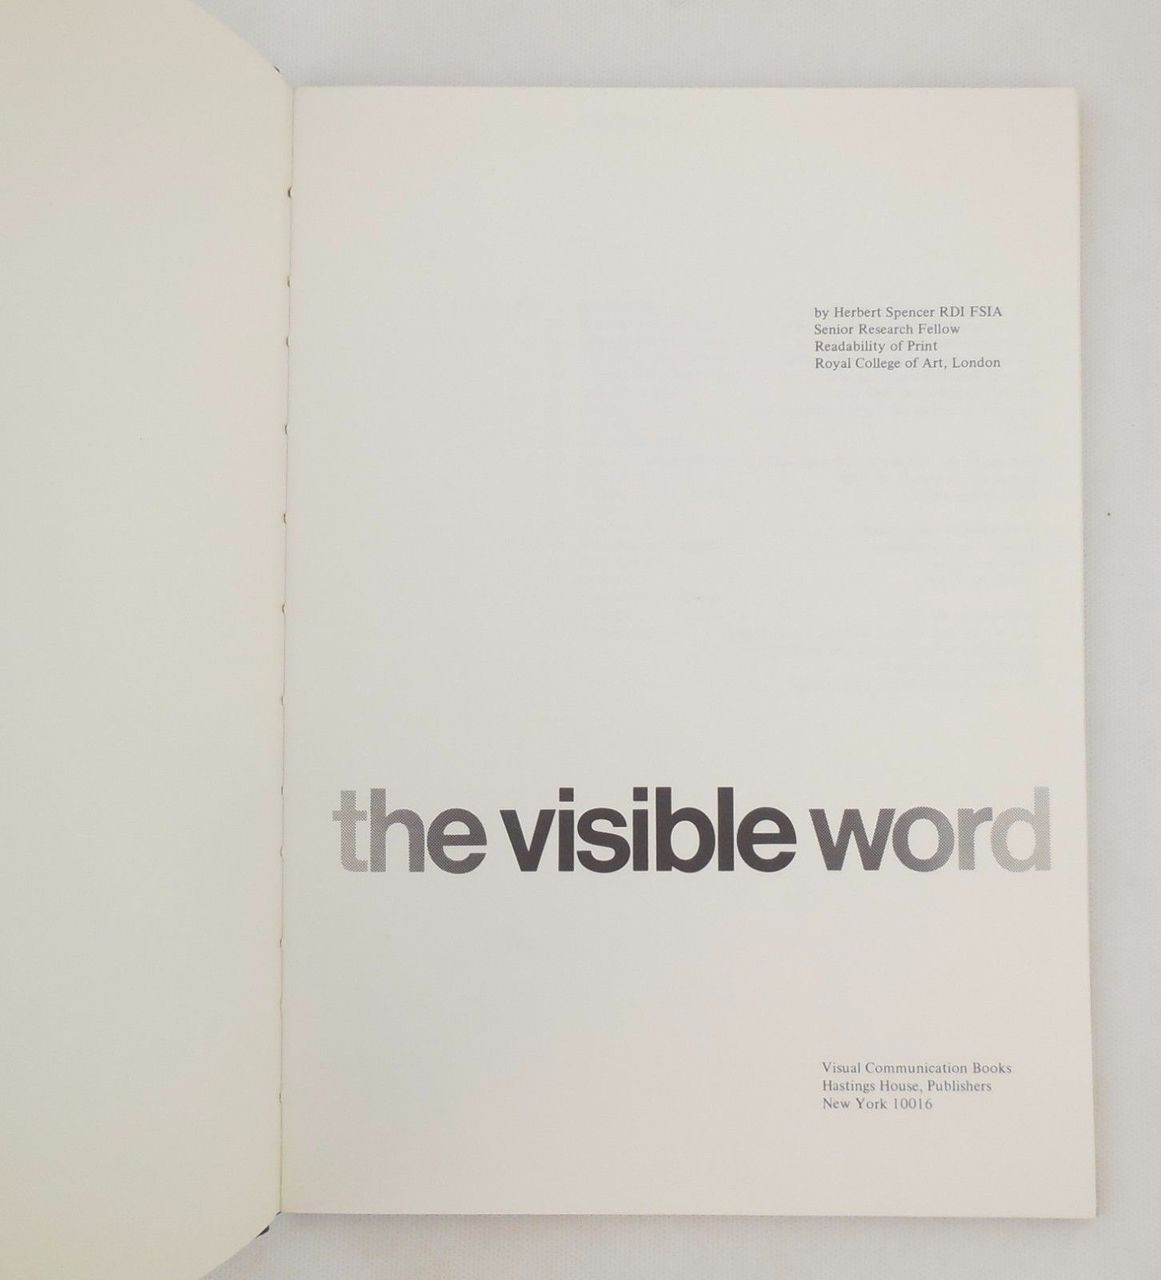 THE VISIBLE WORD, by Herbert Spencer - 1969